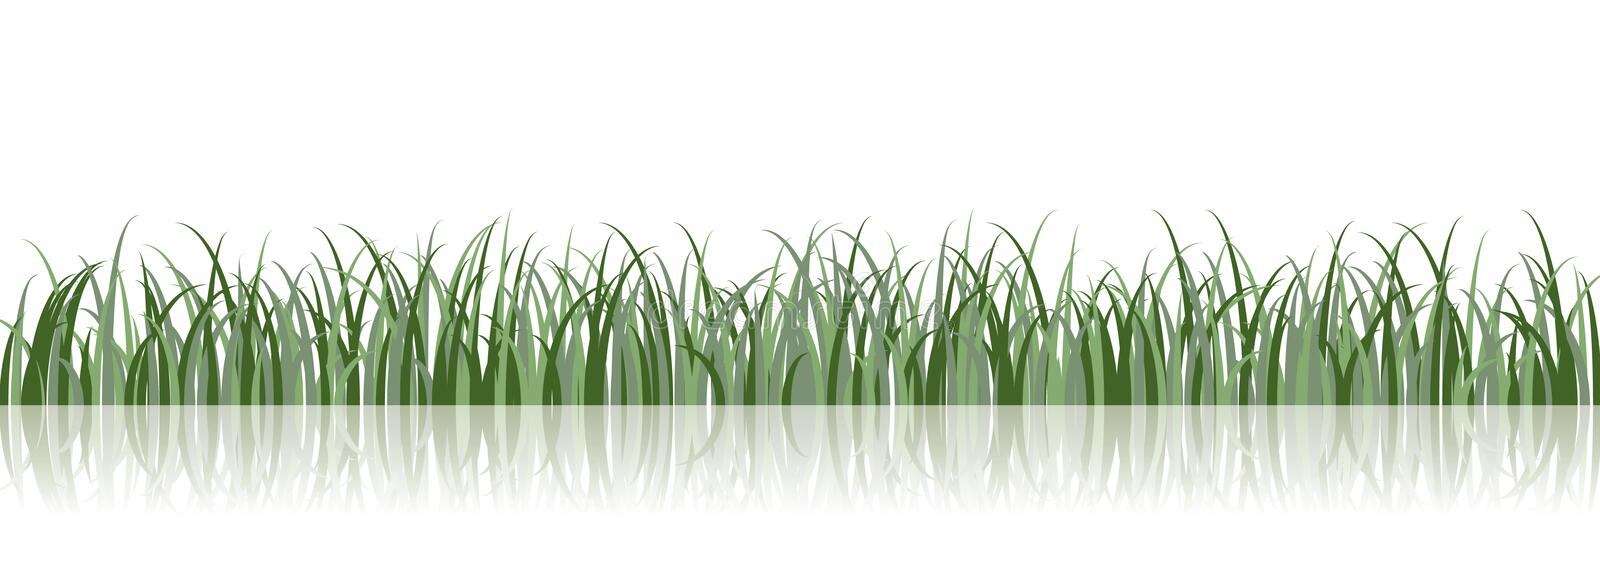 Vector Grass Illustration royalty free stock image